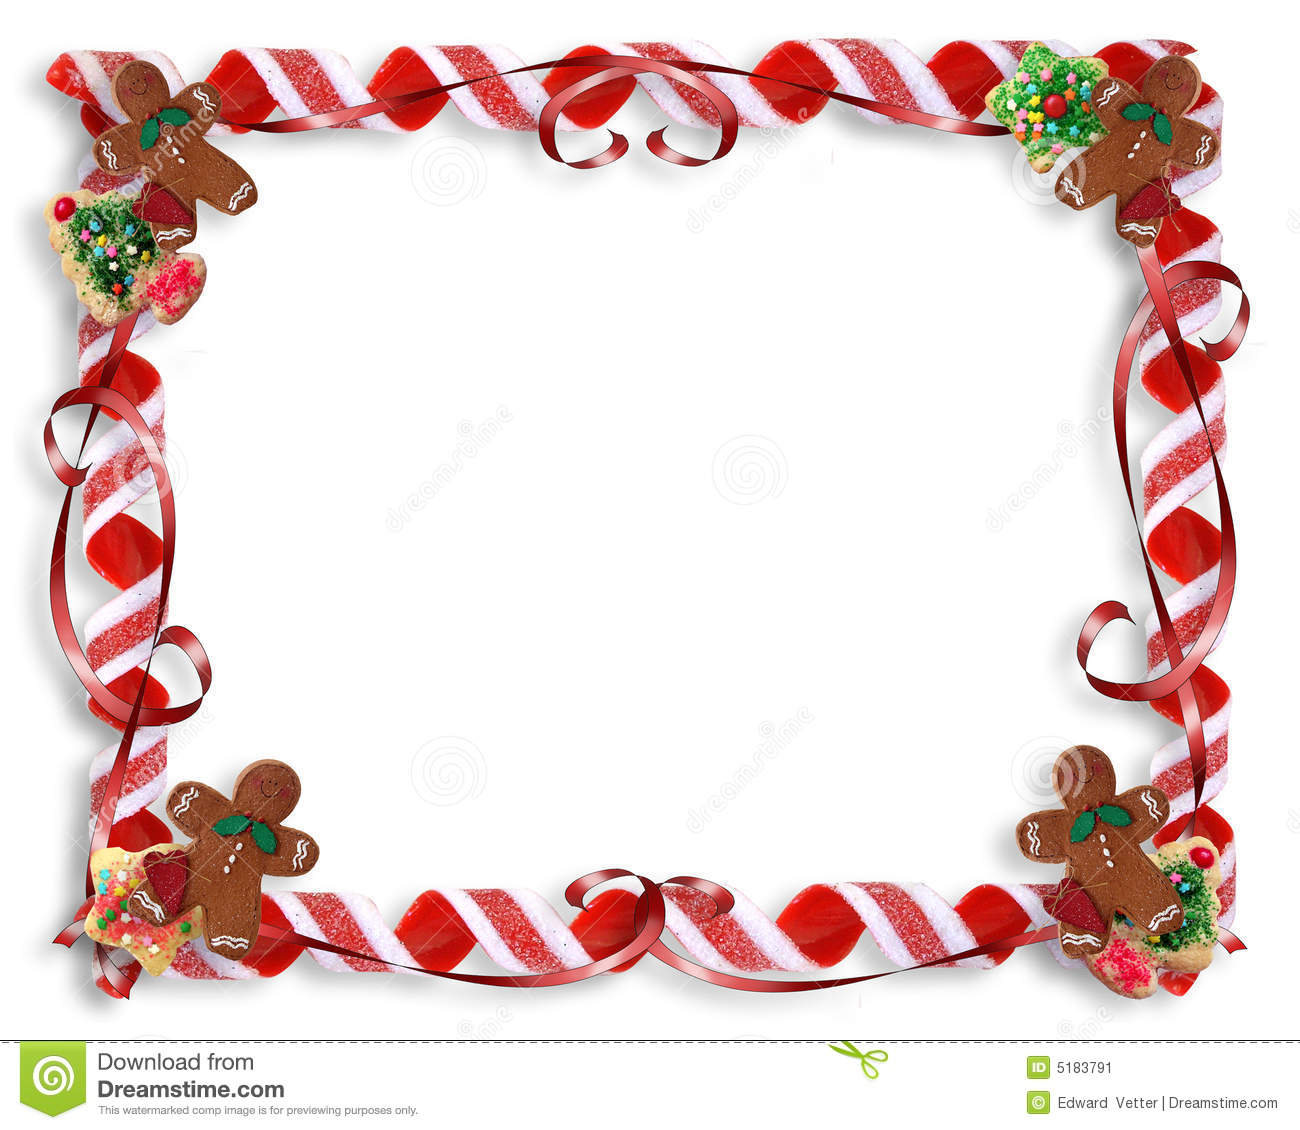 Navidad border gallery for Clipart natale free download